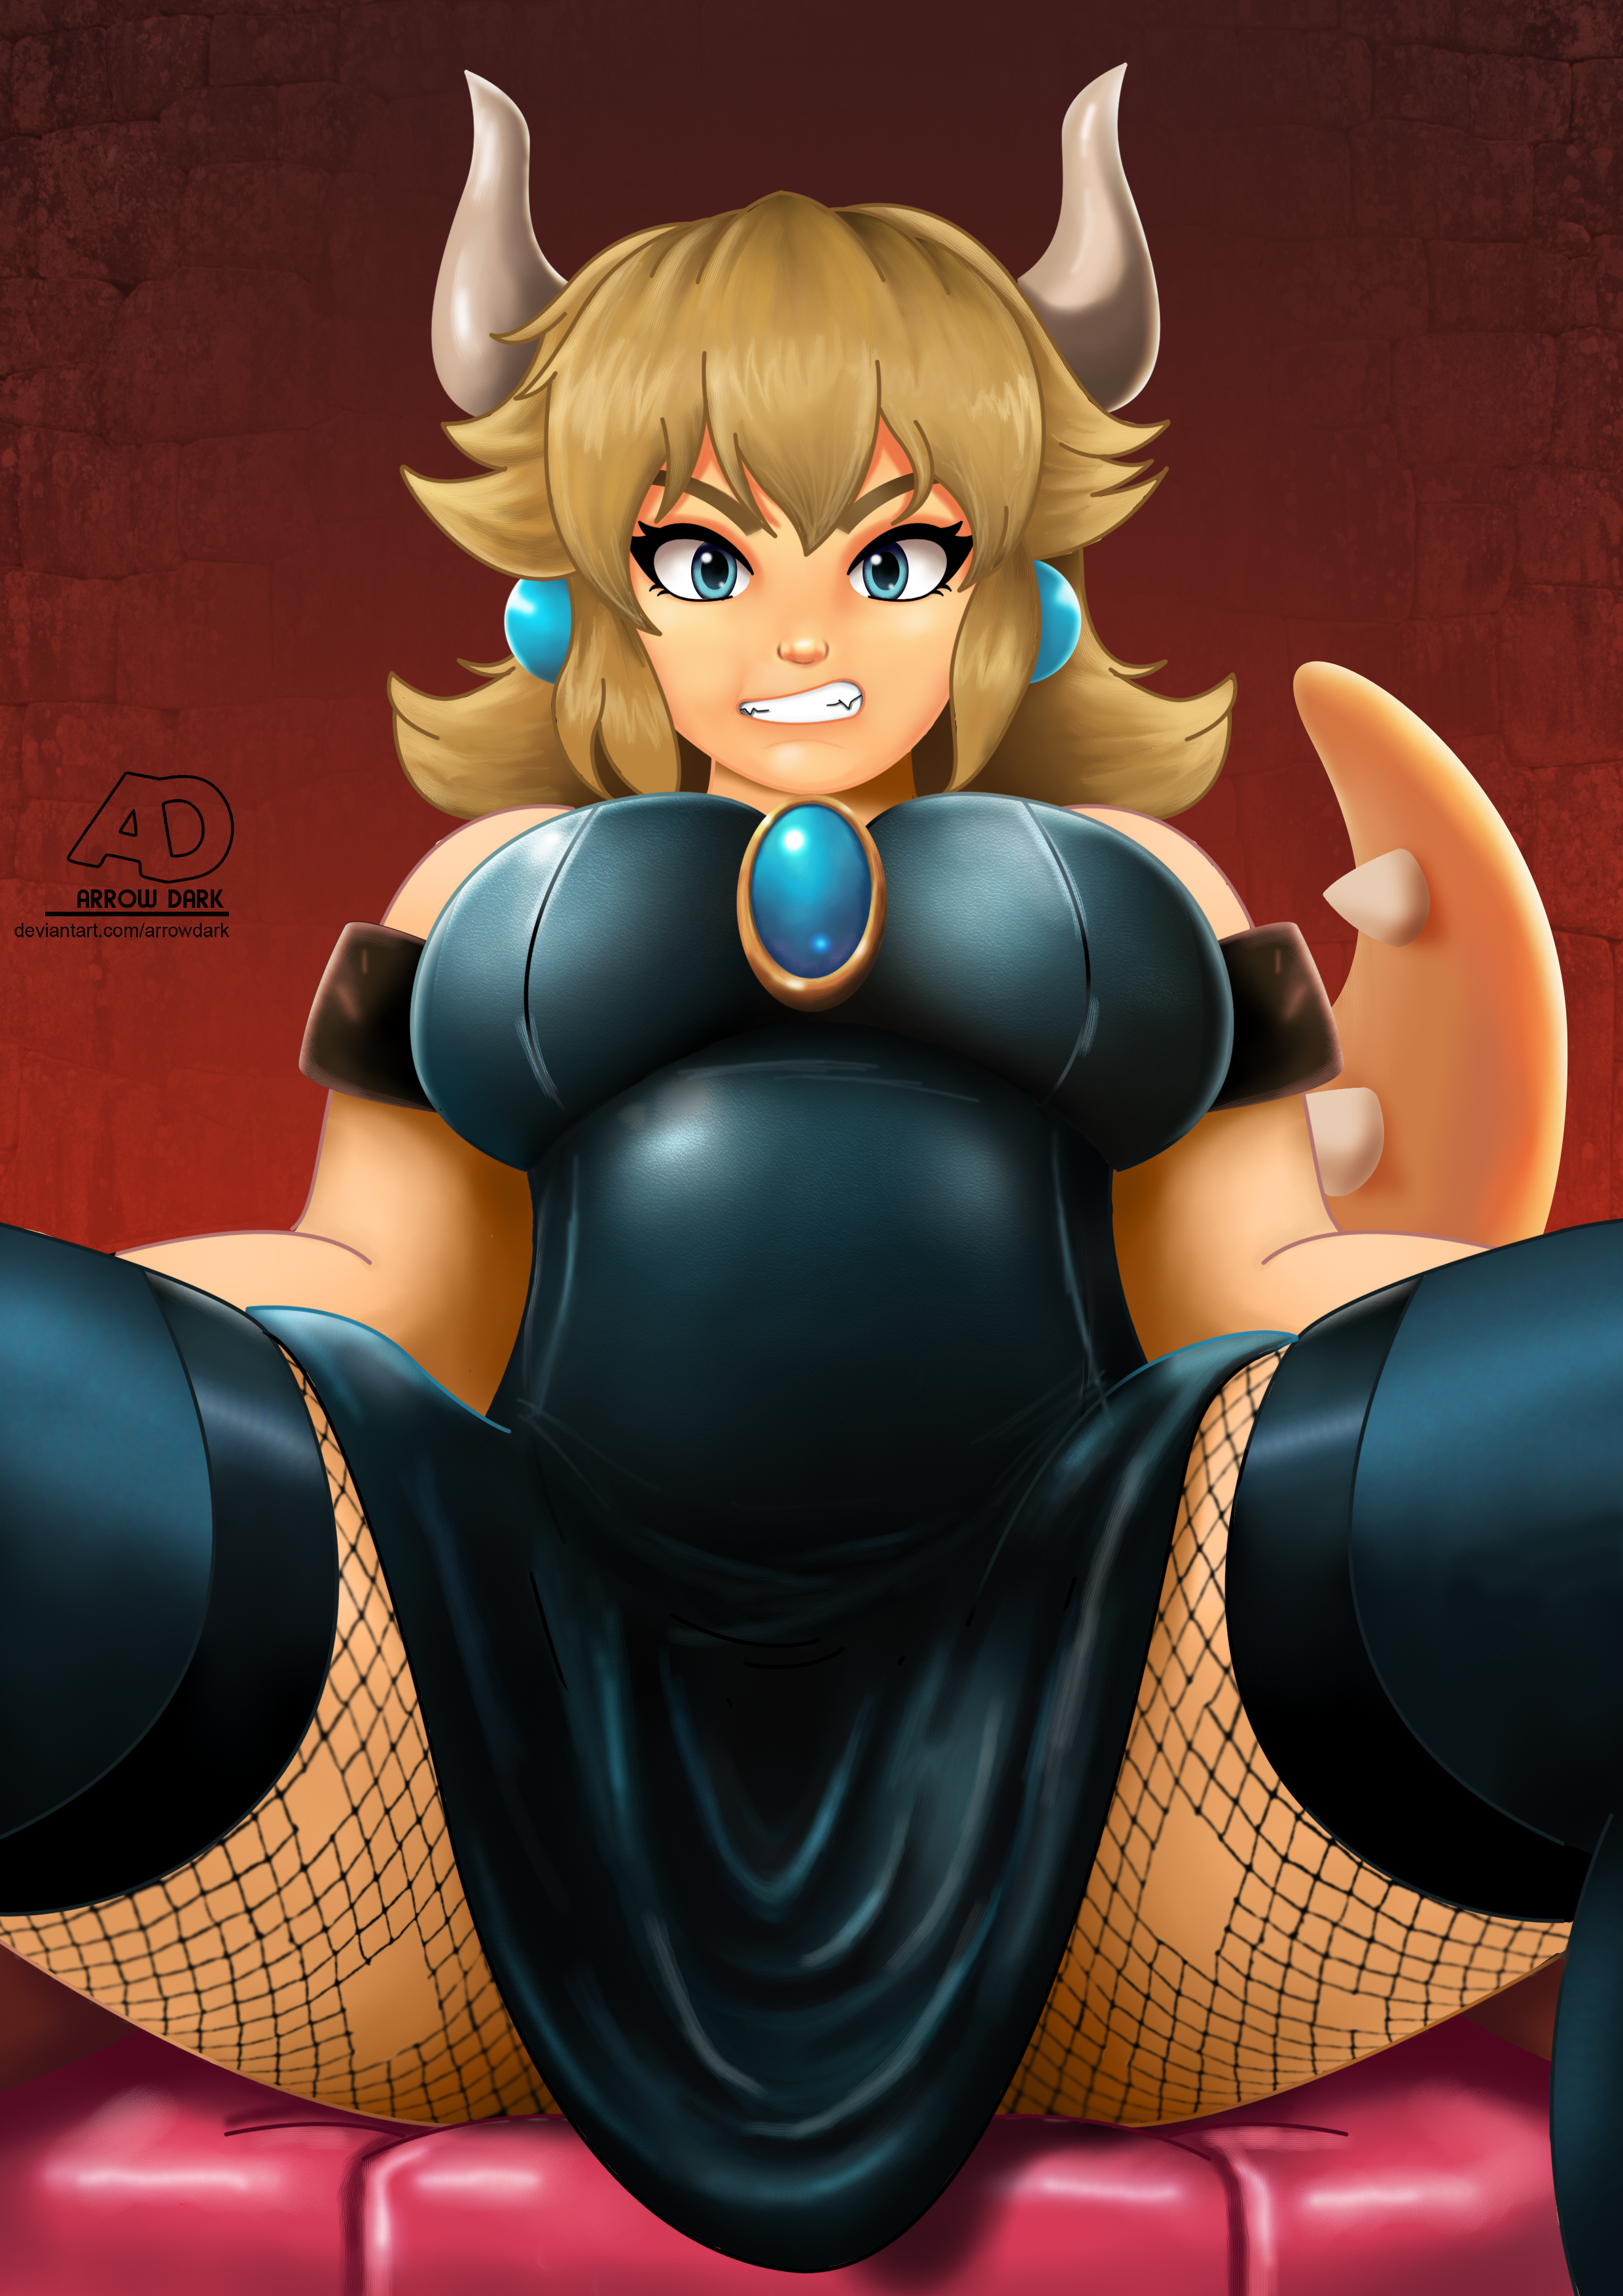 Bowsette by IVOanimations on Newgrounds